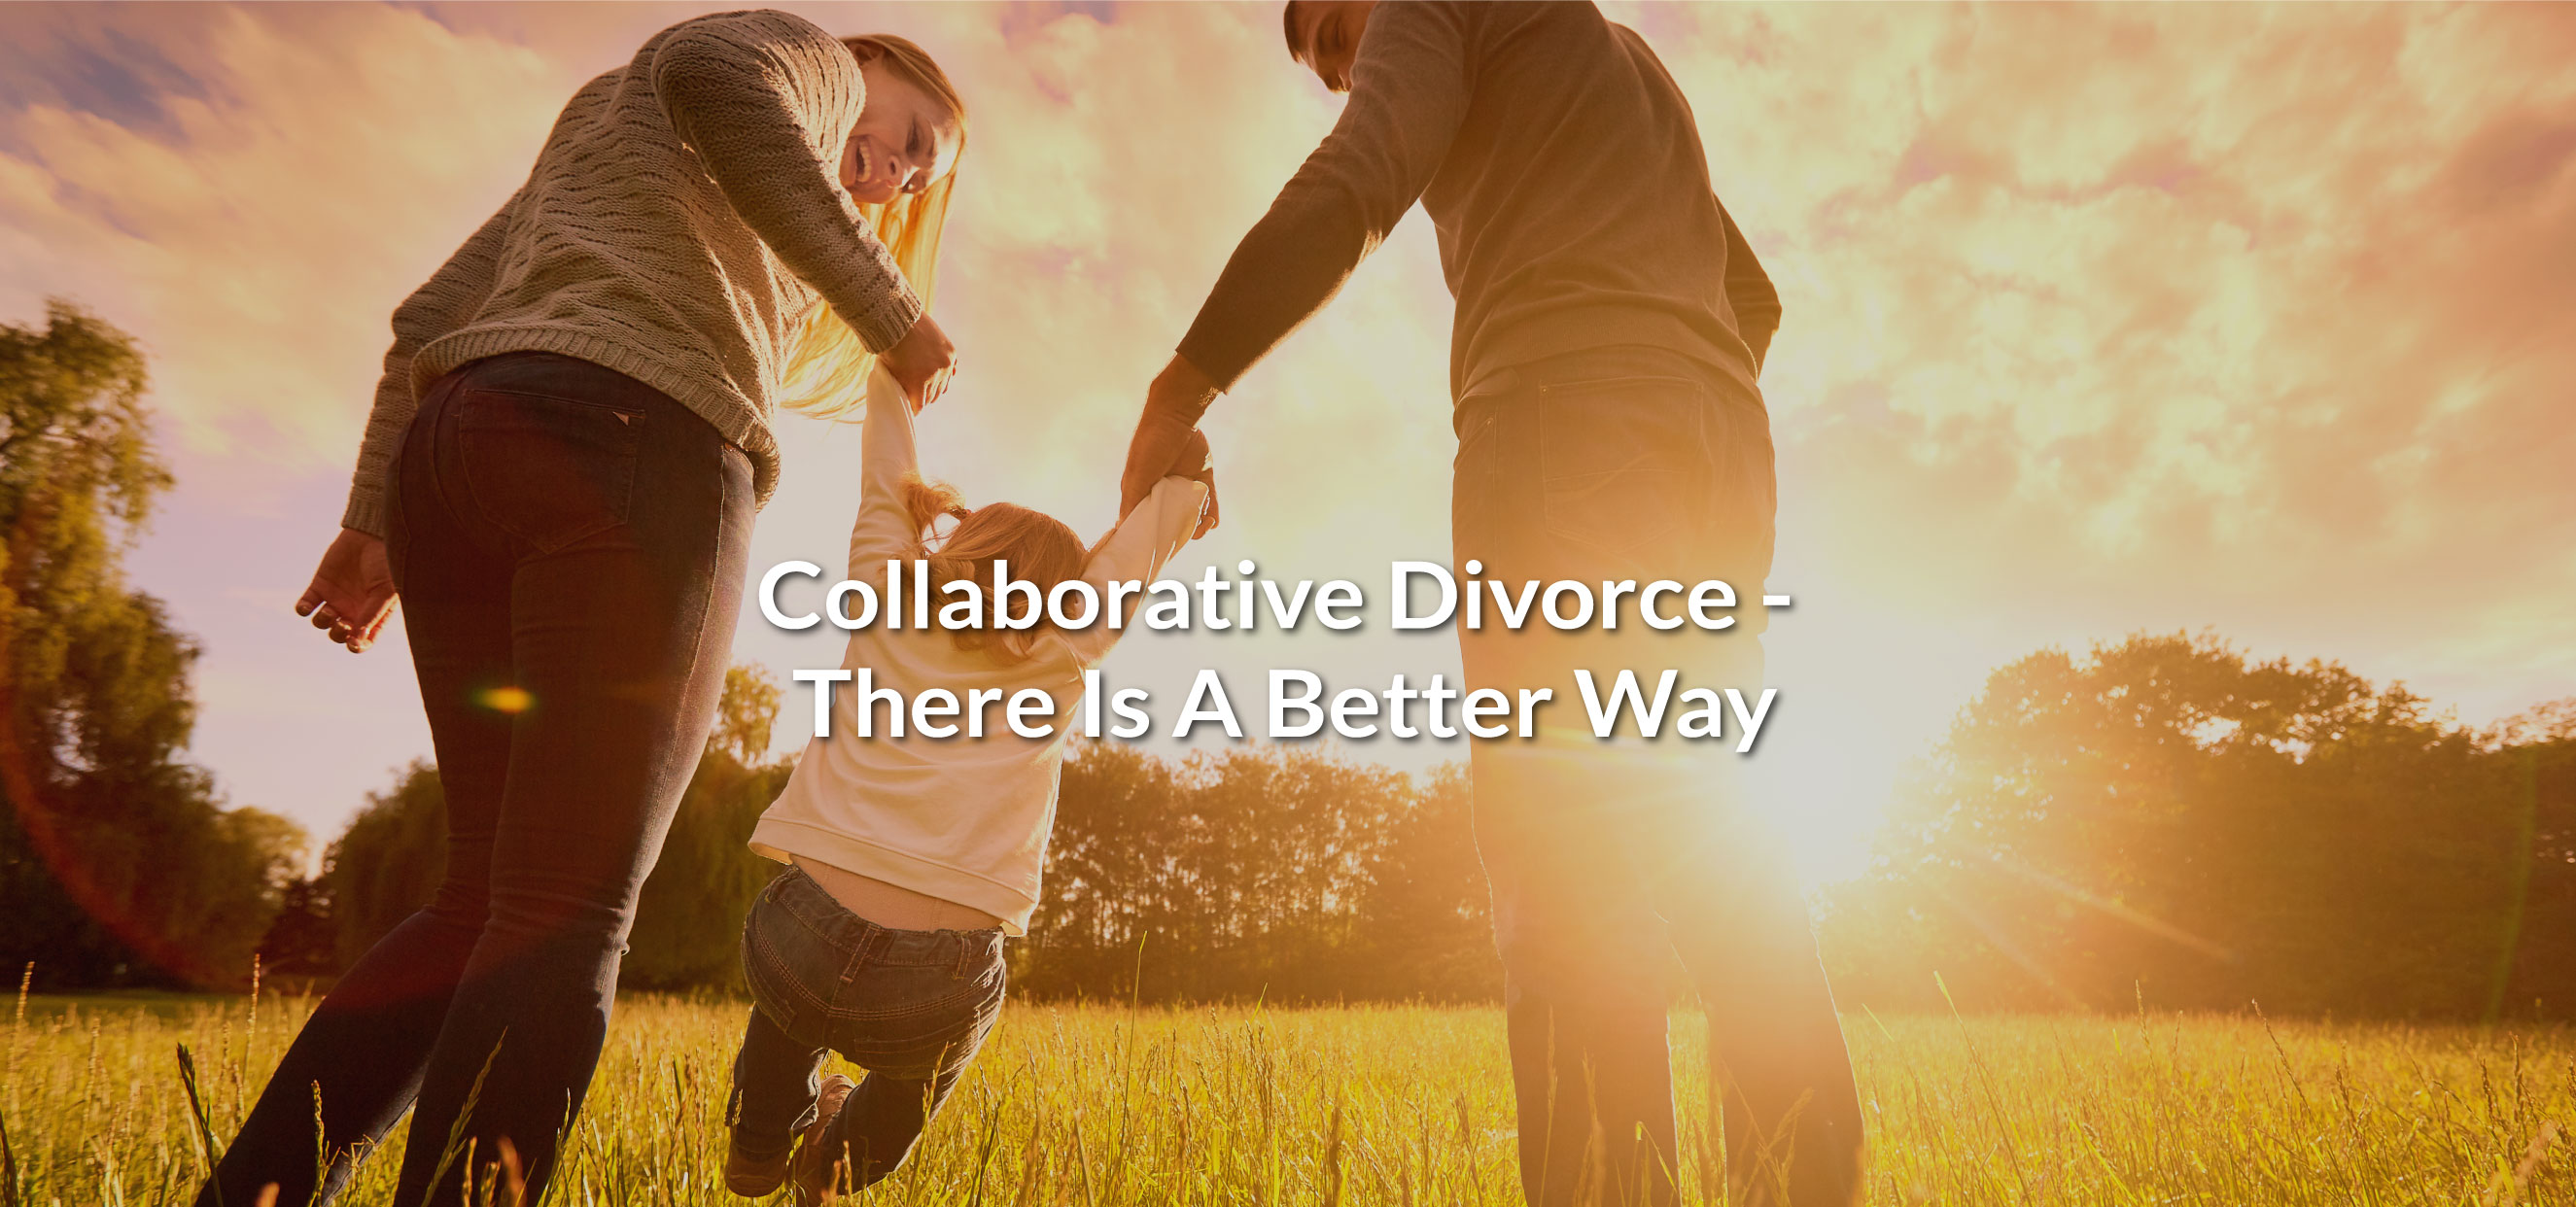 collaborative divorce, there is a better way